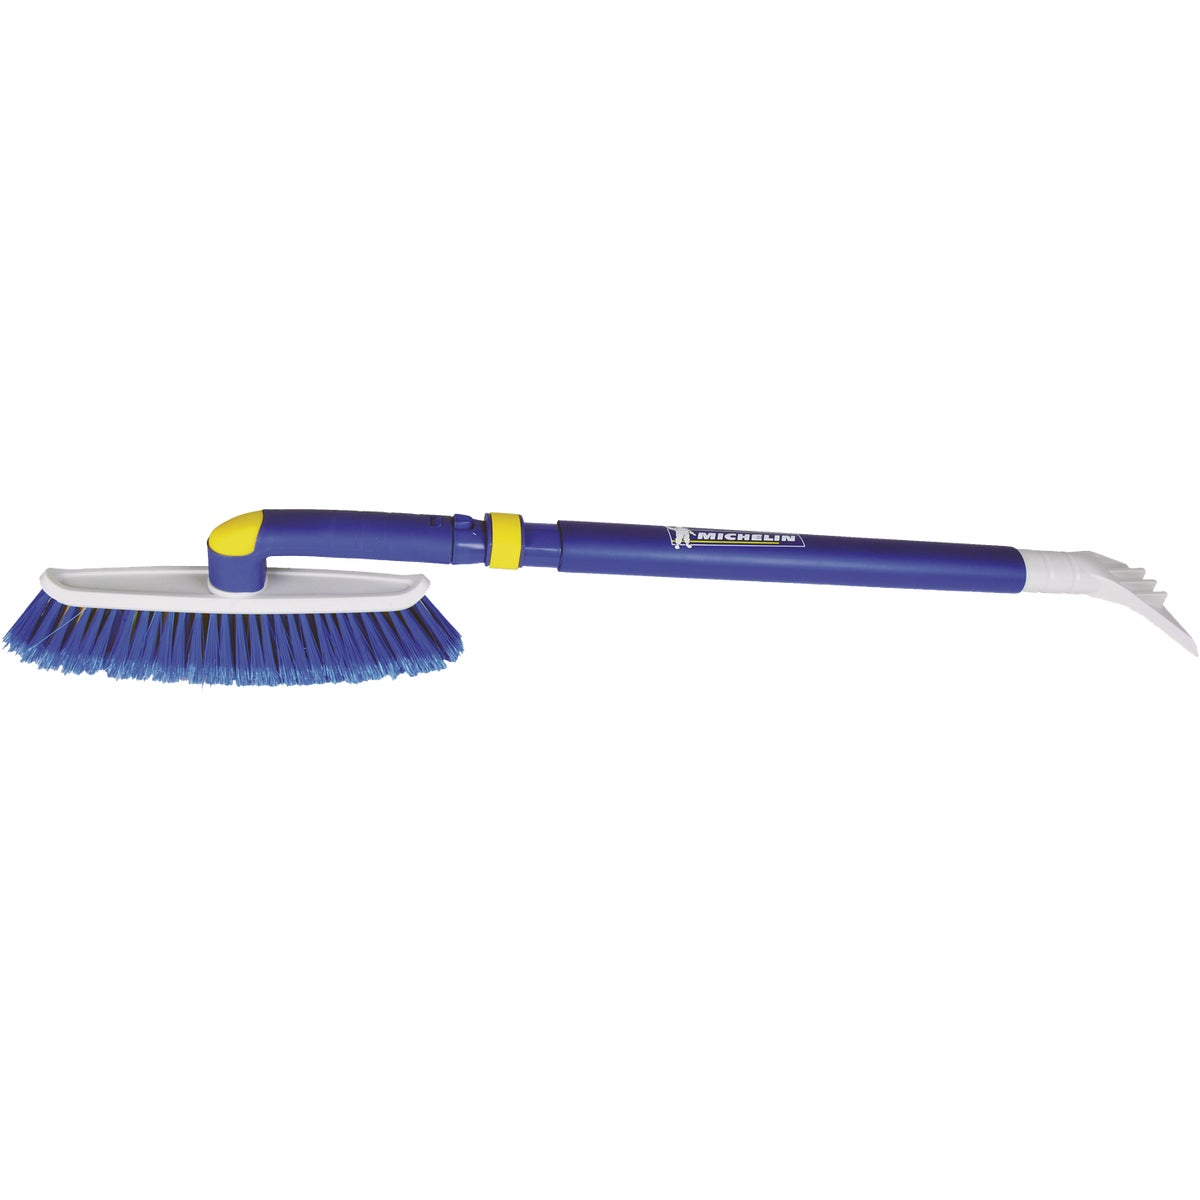 "52"" EXTENDABLE SNOWBROOM - 2610XM by Hopkins Mfg Corp"